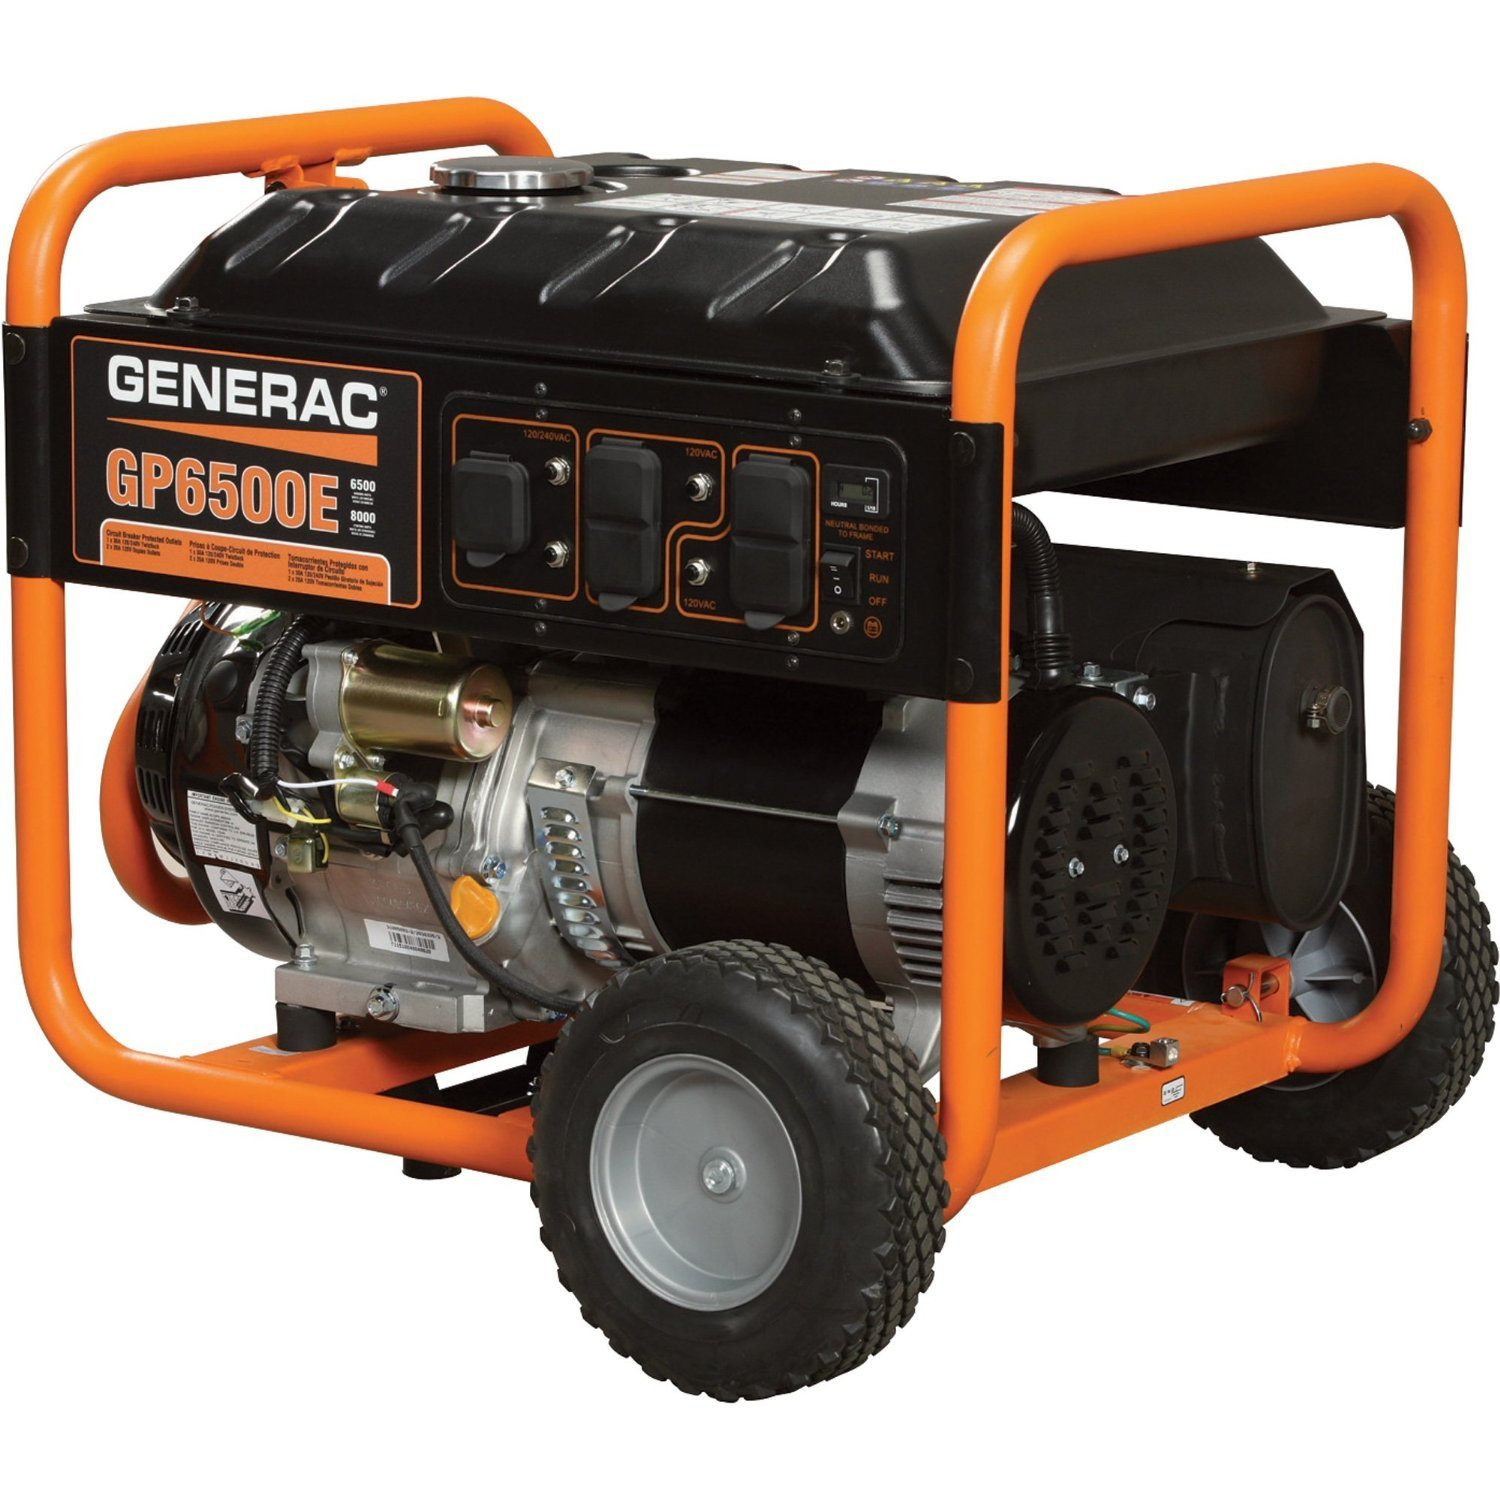 Generac 6500E Portable Generator Back Up Power Generators